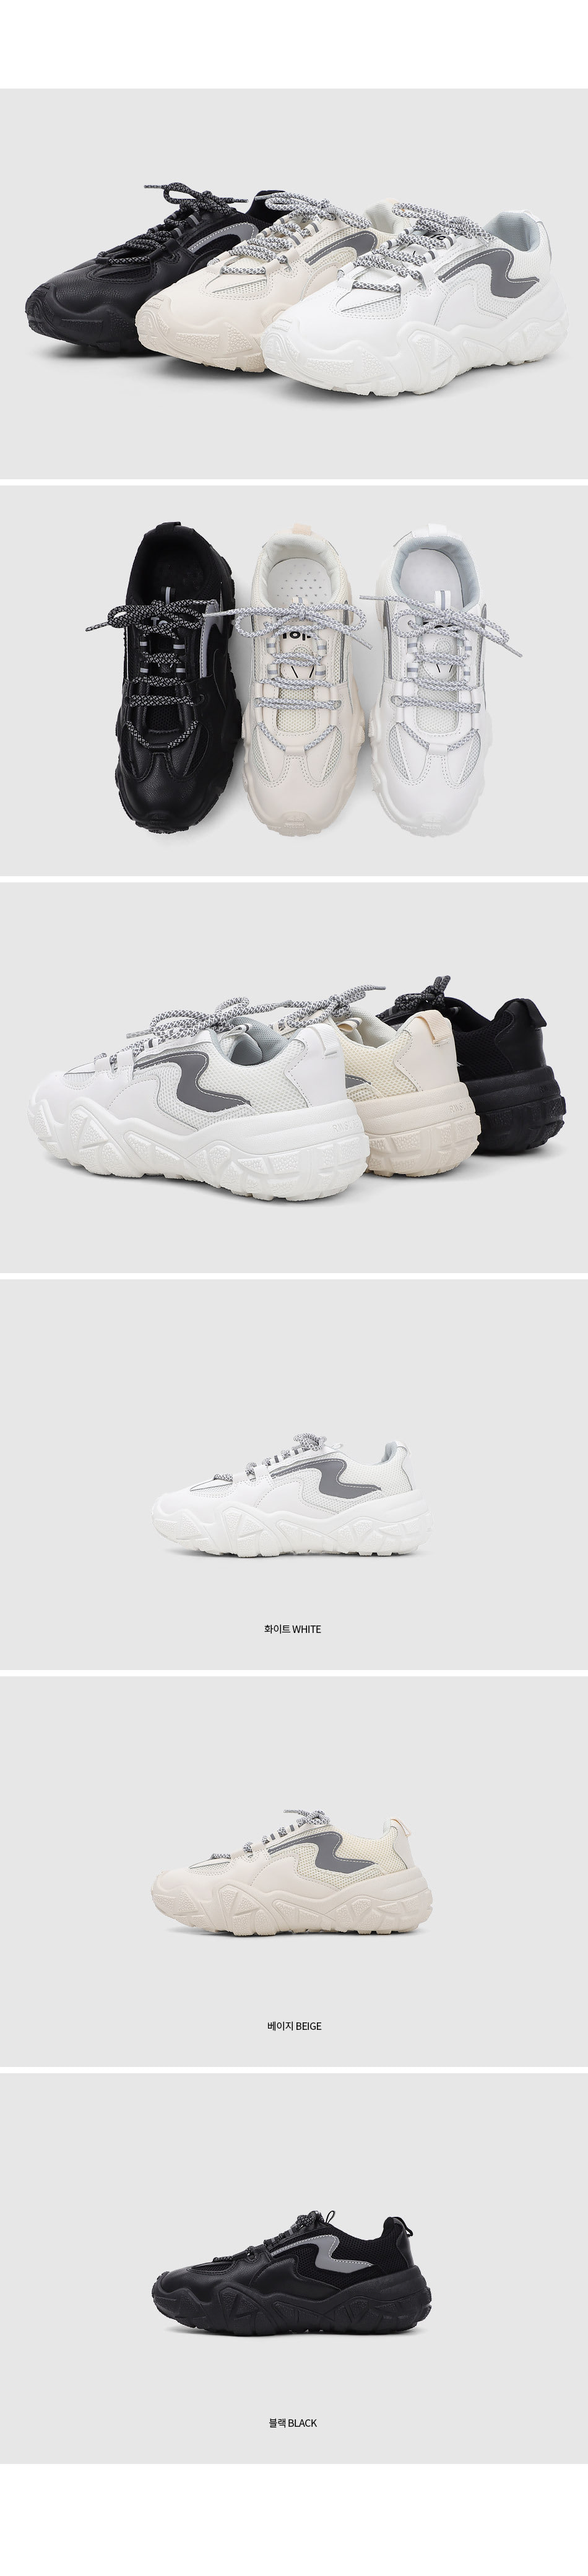 Isshu Ugly Mesh Lace-up Reflective Sneakers 10832